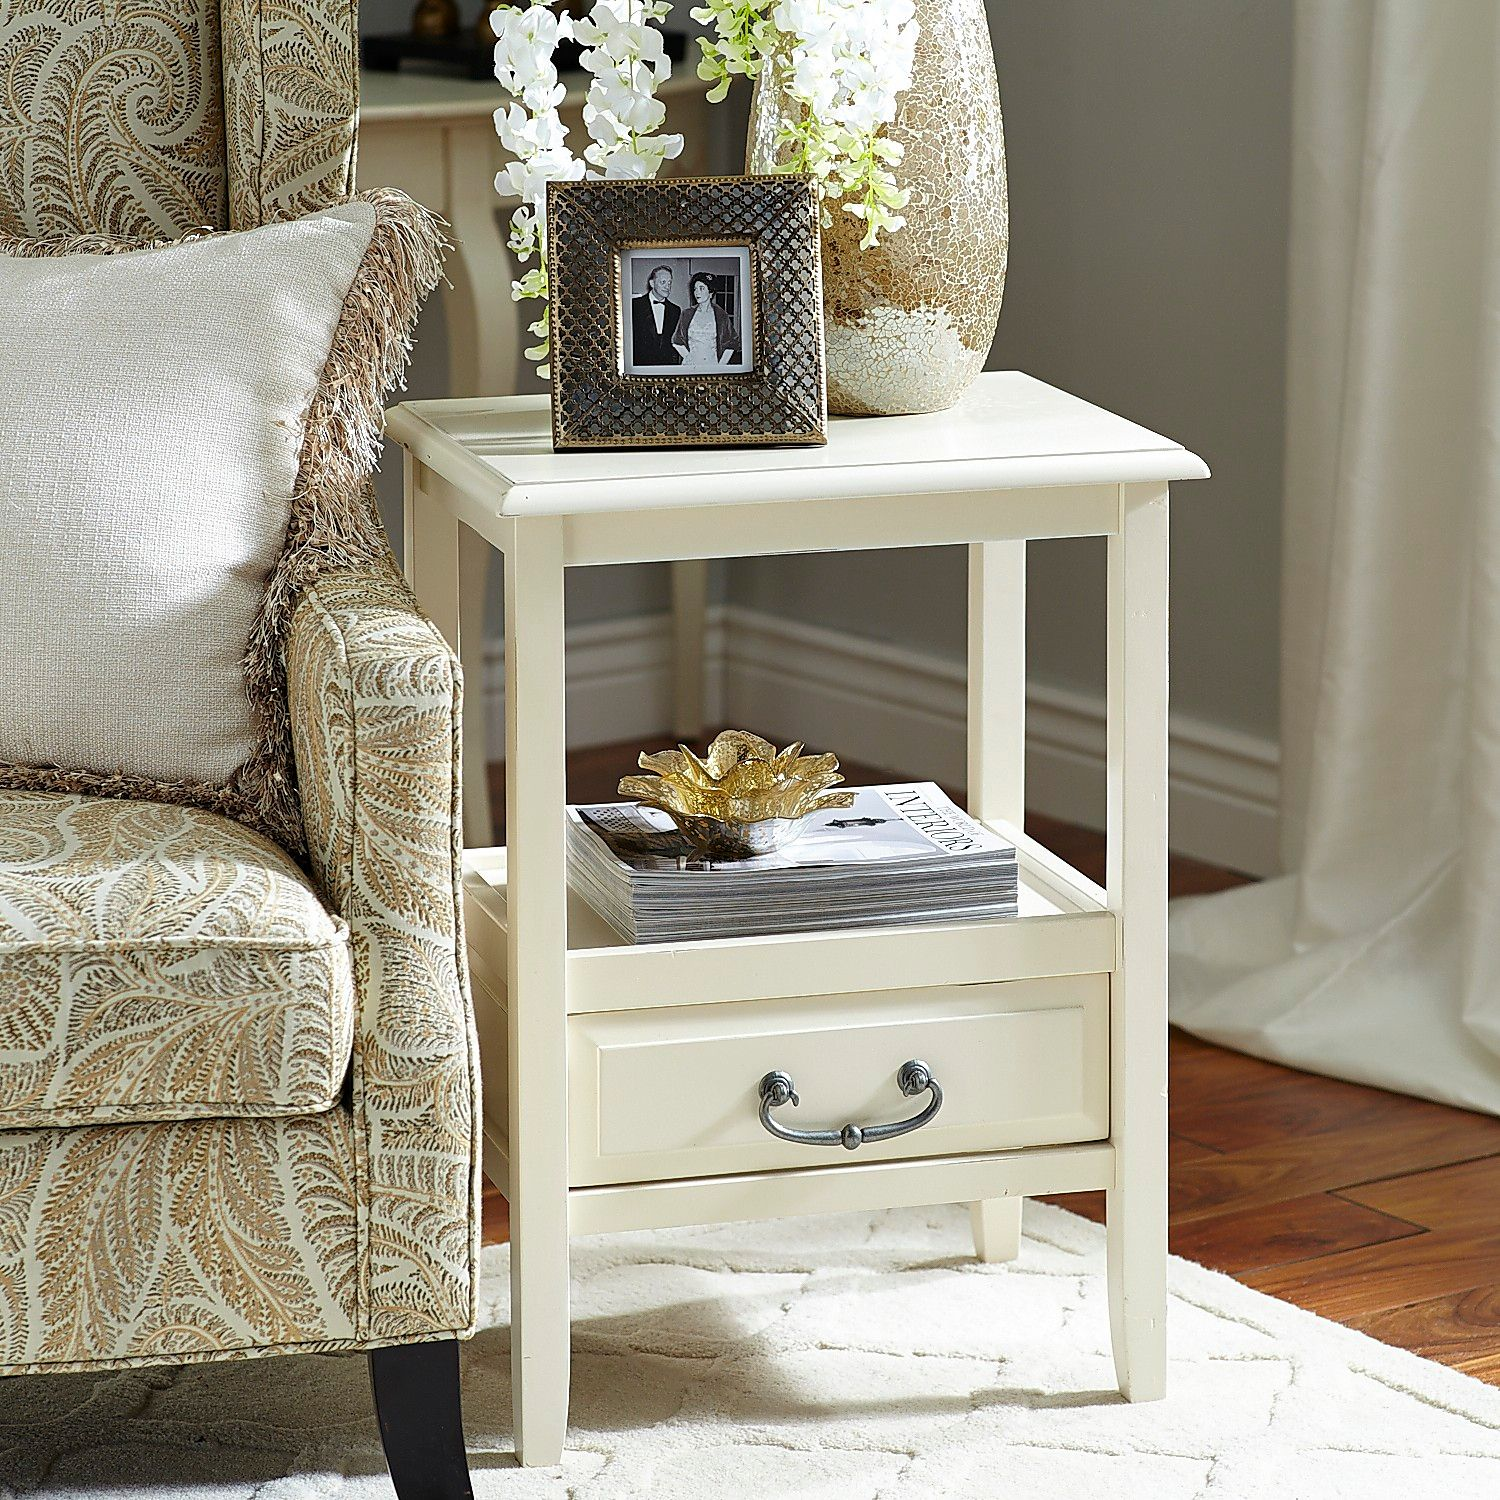 anywhere antique white end table with pull handles pier imports one accent verizon ellipsis wicker furniture set clearance metal patio tables pool covers bunnings frame black